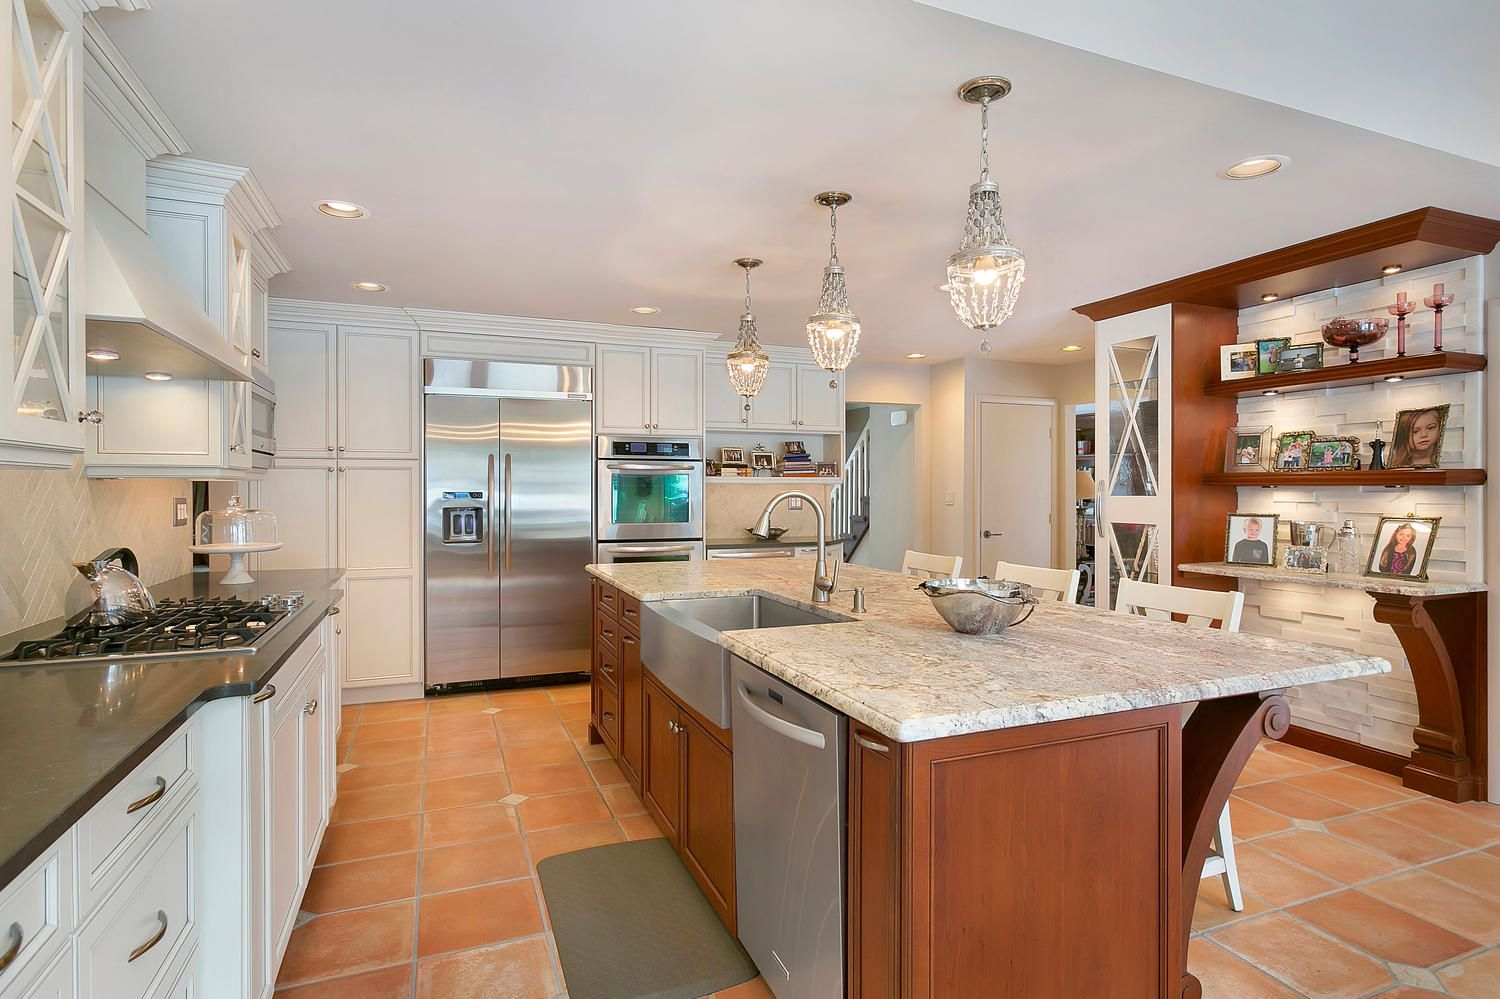 True Original Style Kitchen Morganville New Jerseydesign Line Fair Design Line Kitchens Decorating Design